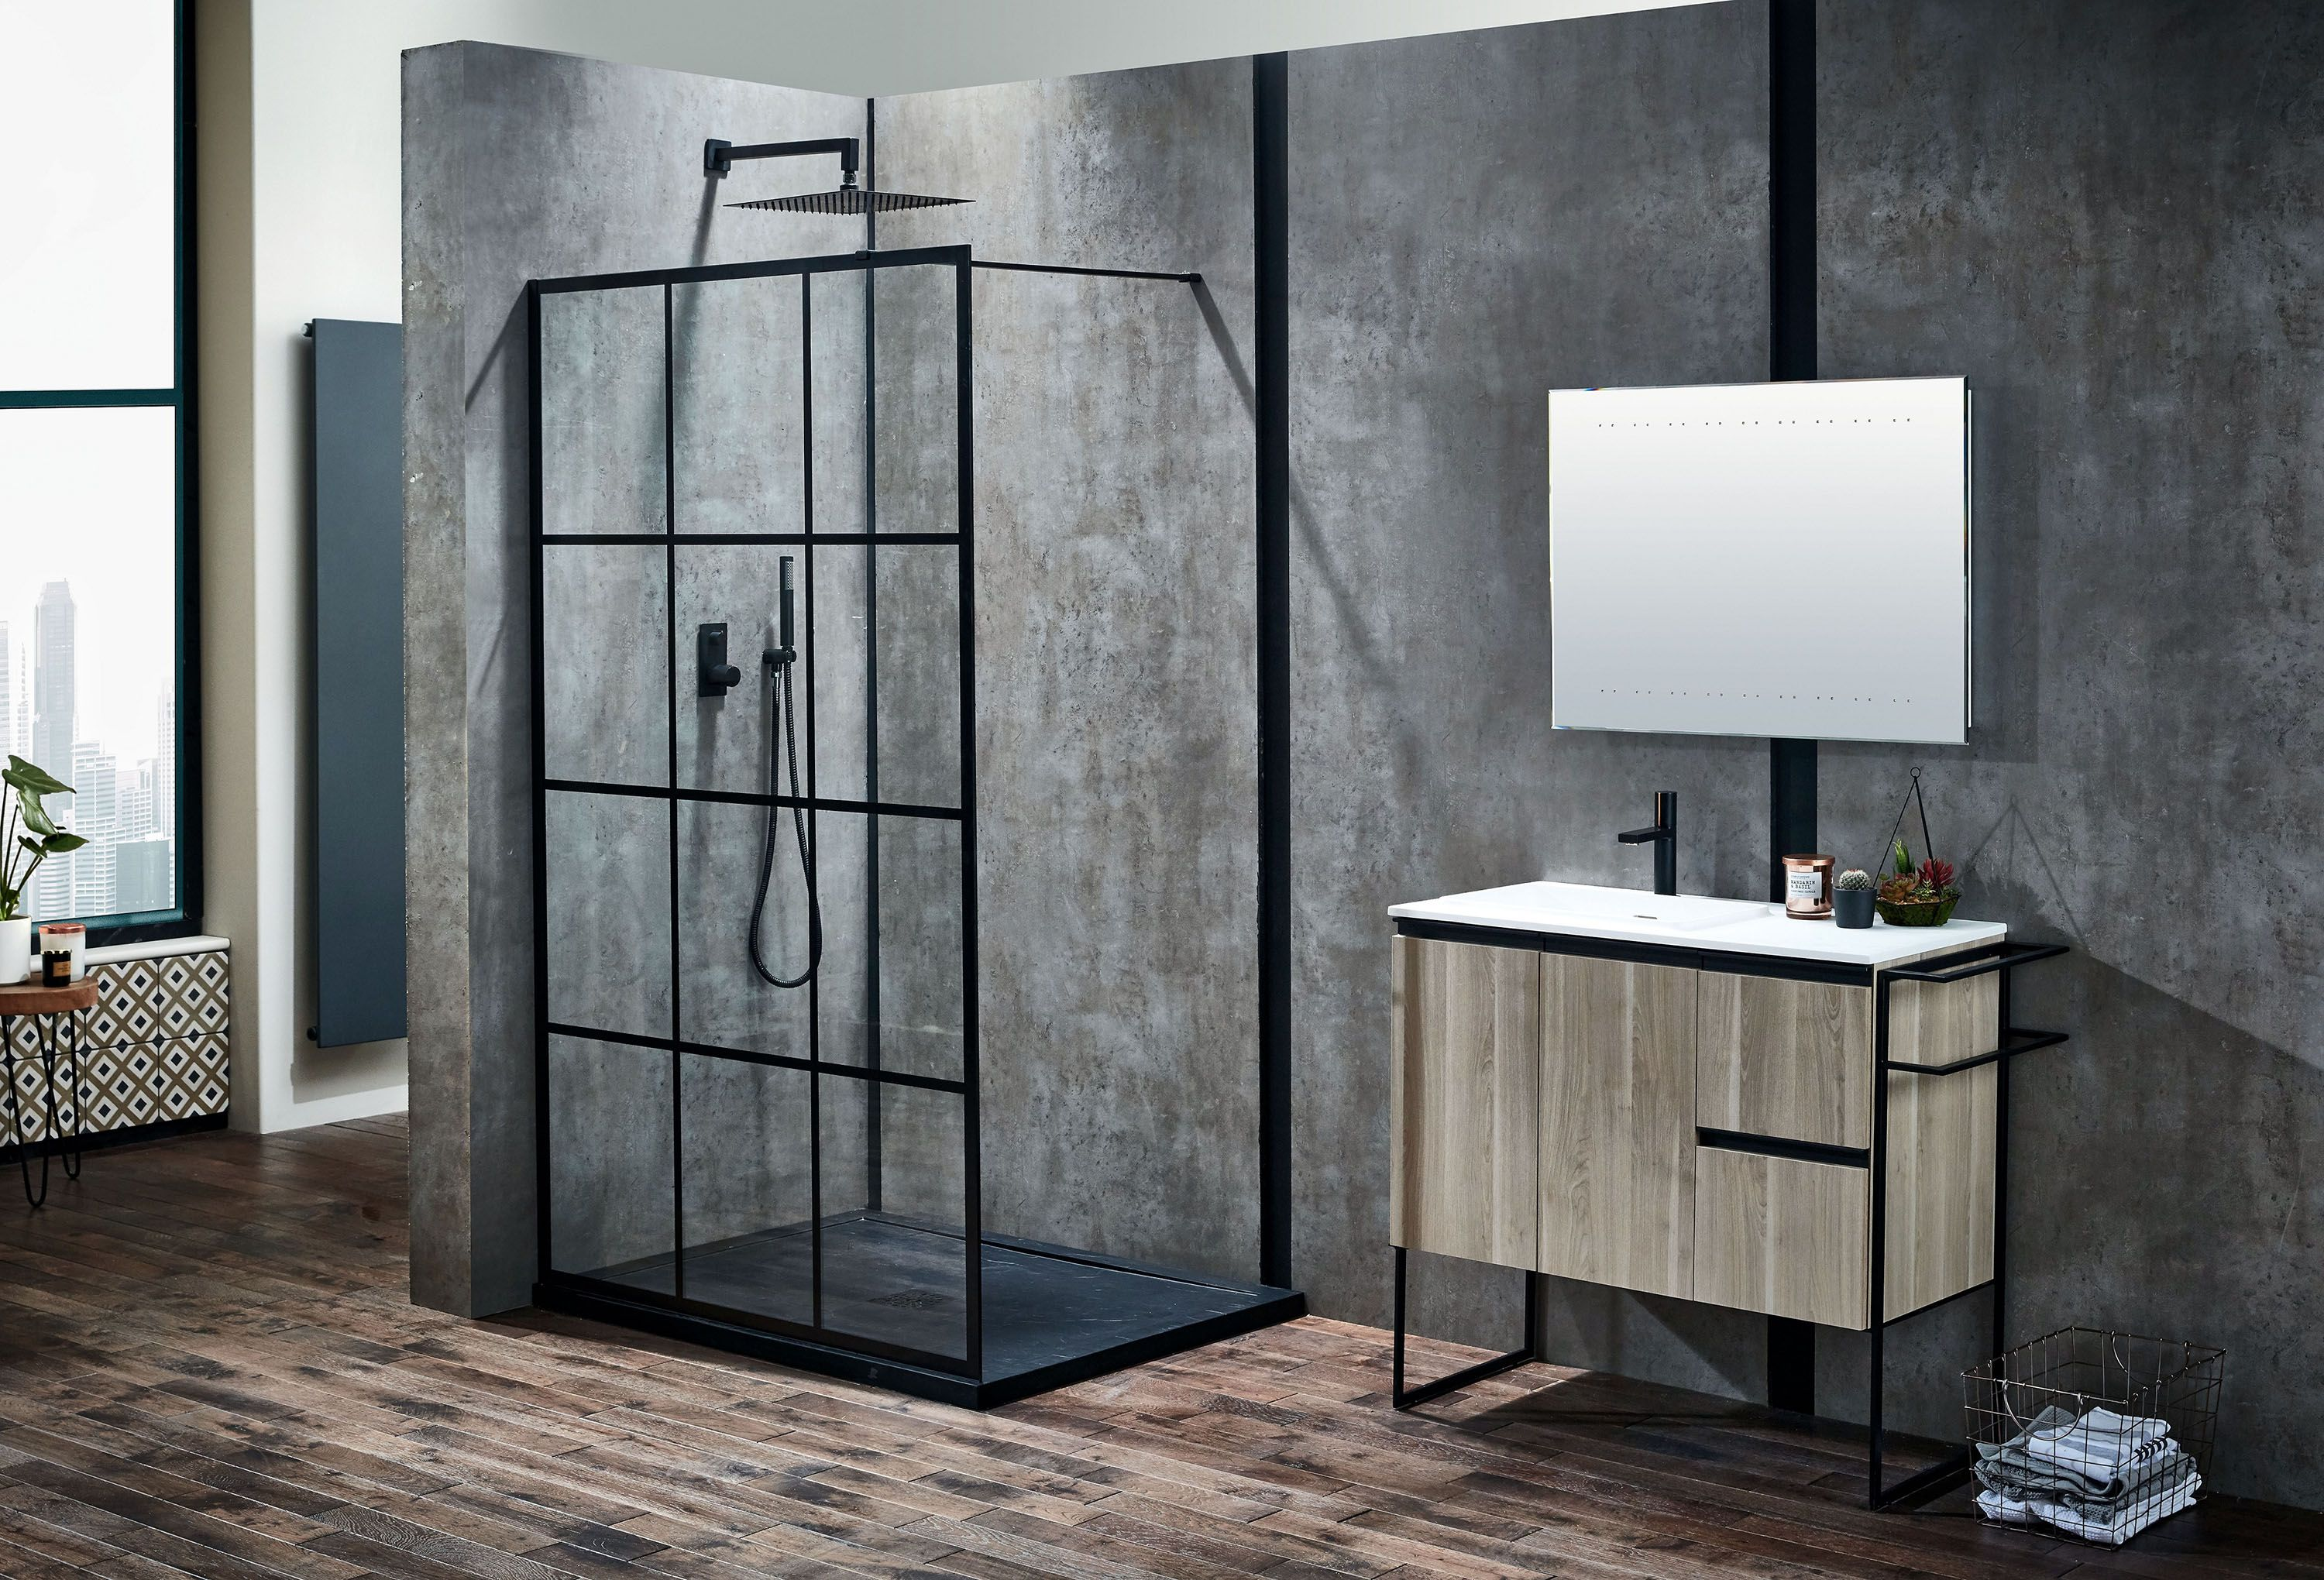 Walk In Shower With Belgian Style Shower Screen Shower Panels Shower Enclosure Walk In Shower